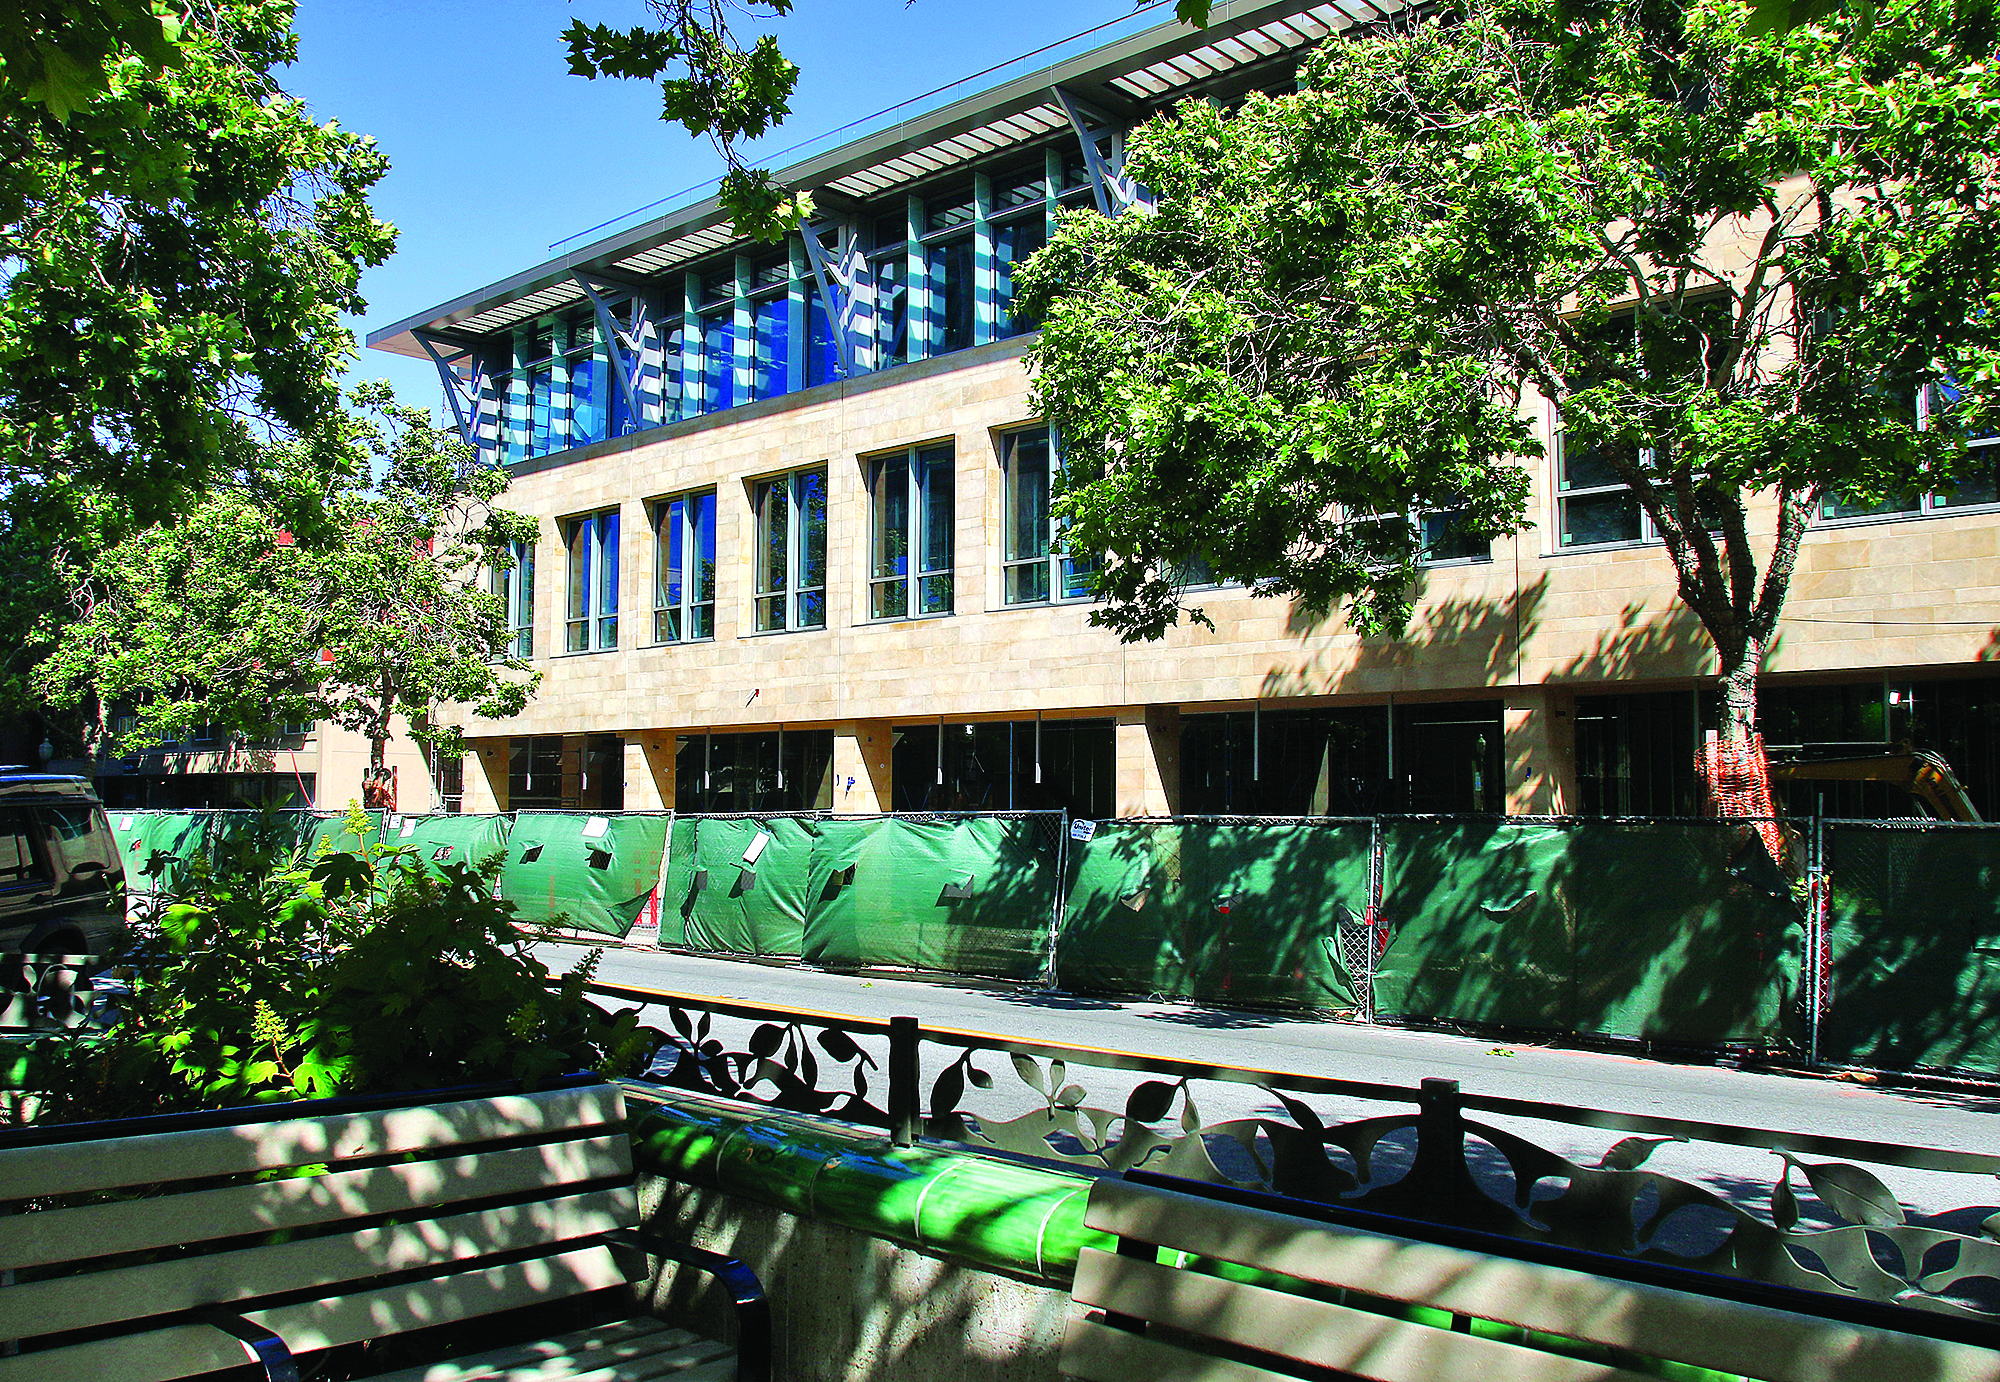 Under construction, a new 26,806-square-foot,three-story office-and-retailbuilding at 500 University Ave. in downtown Palo Alto replaced a 16,000 square foot building.